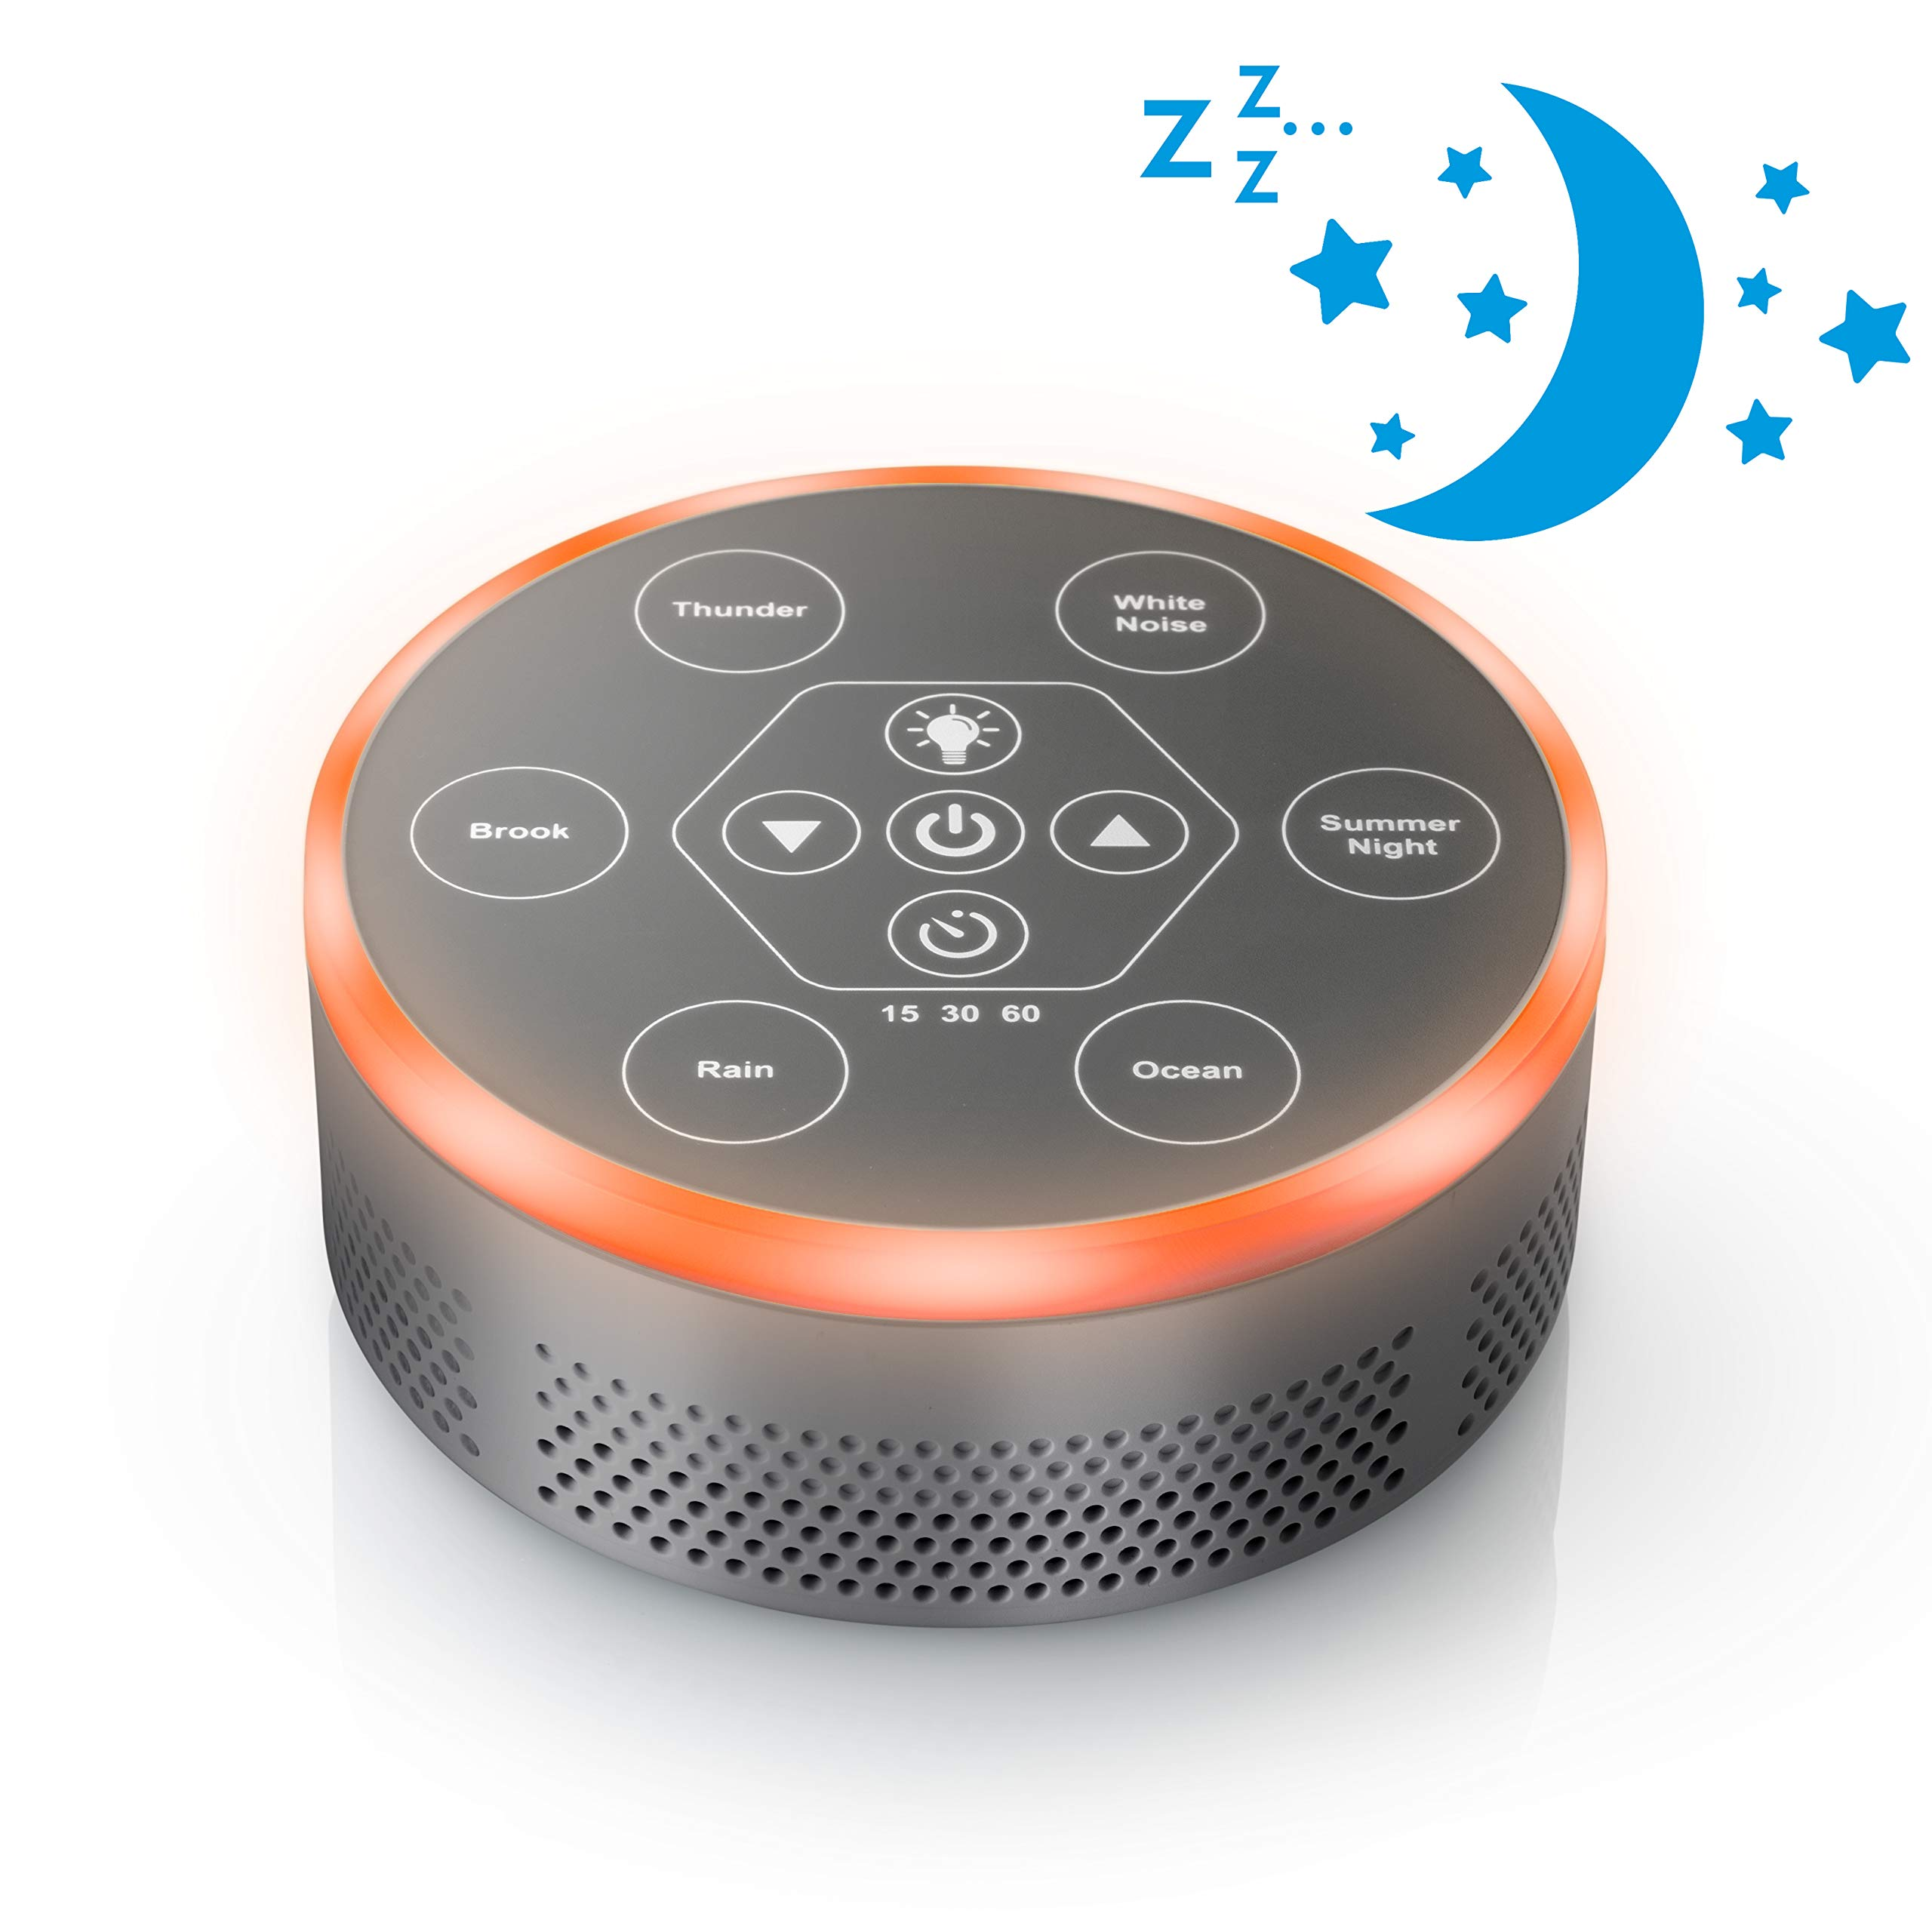 Dream Zone White Noise Sound Machine - Relaxing Sleep Therapy for Home, Office, Baby & Study - 6 Unique Music Settings, Timer, USB Charging Ports & Flickering Night Light (Silver)